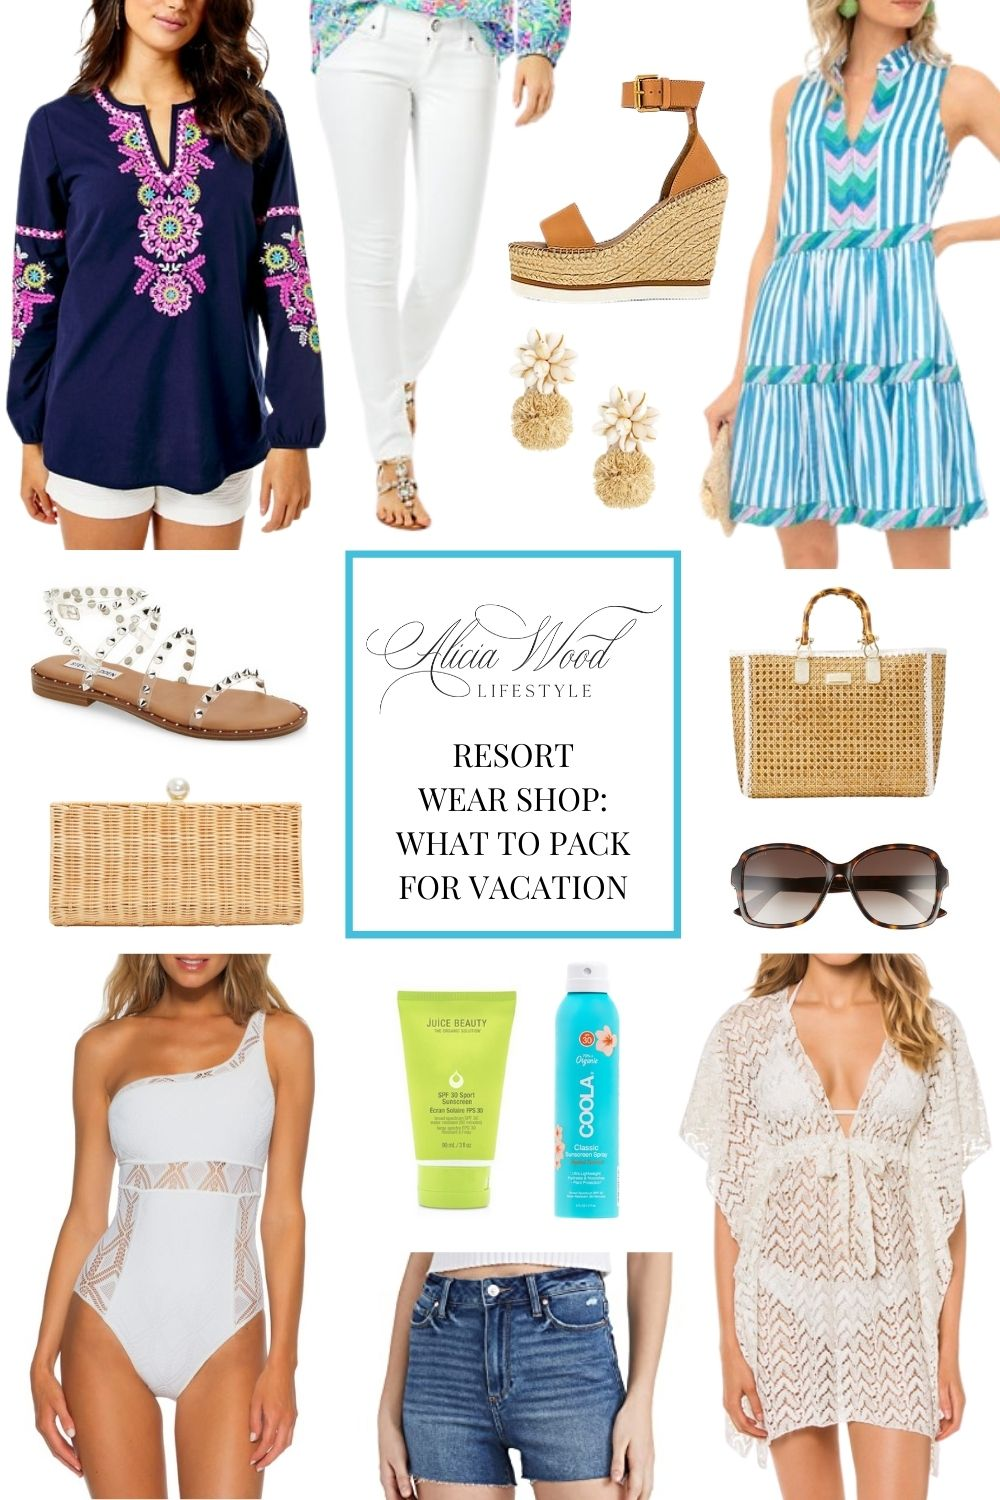 Resort Wear Update: Best Vacation Outfits and Beach Accessories